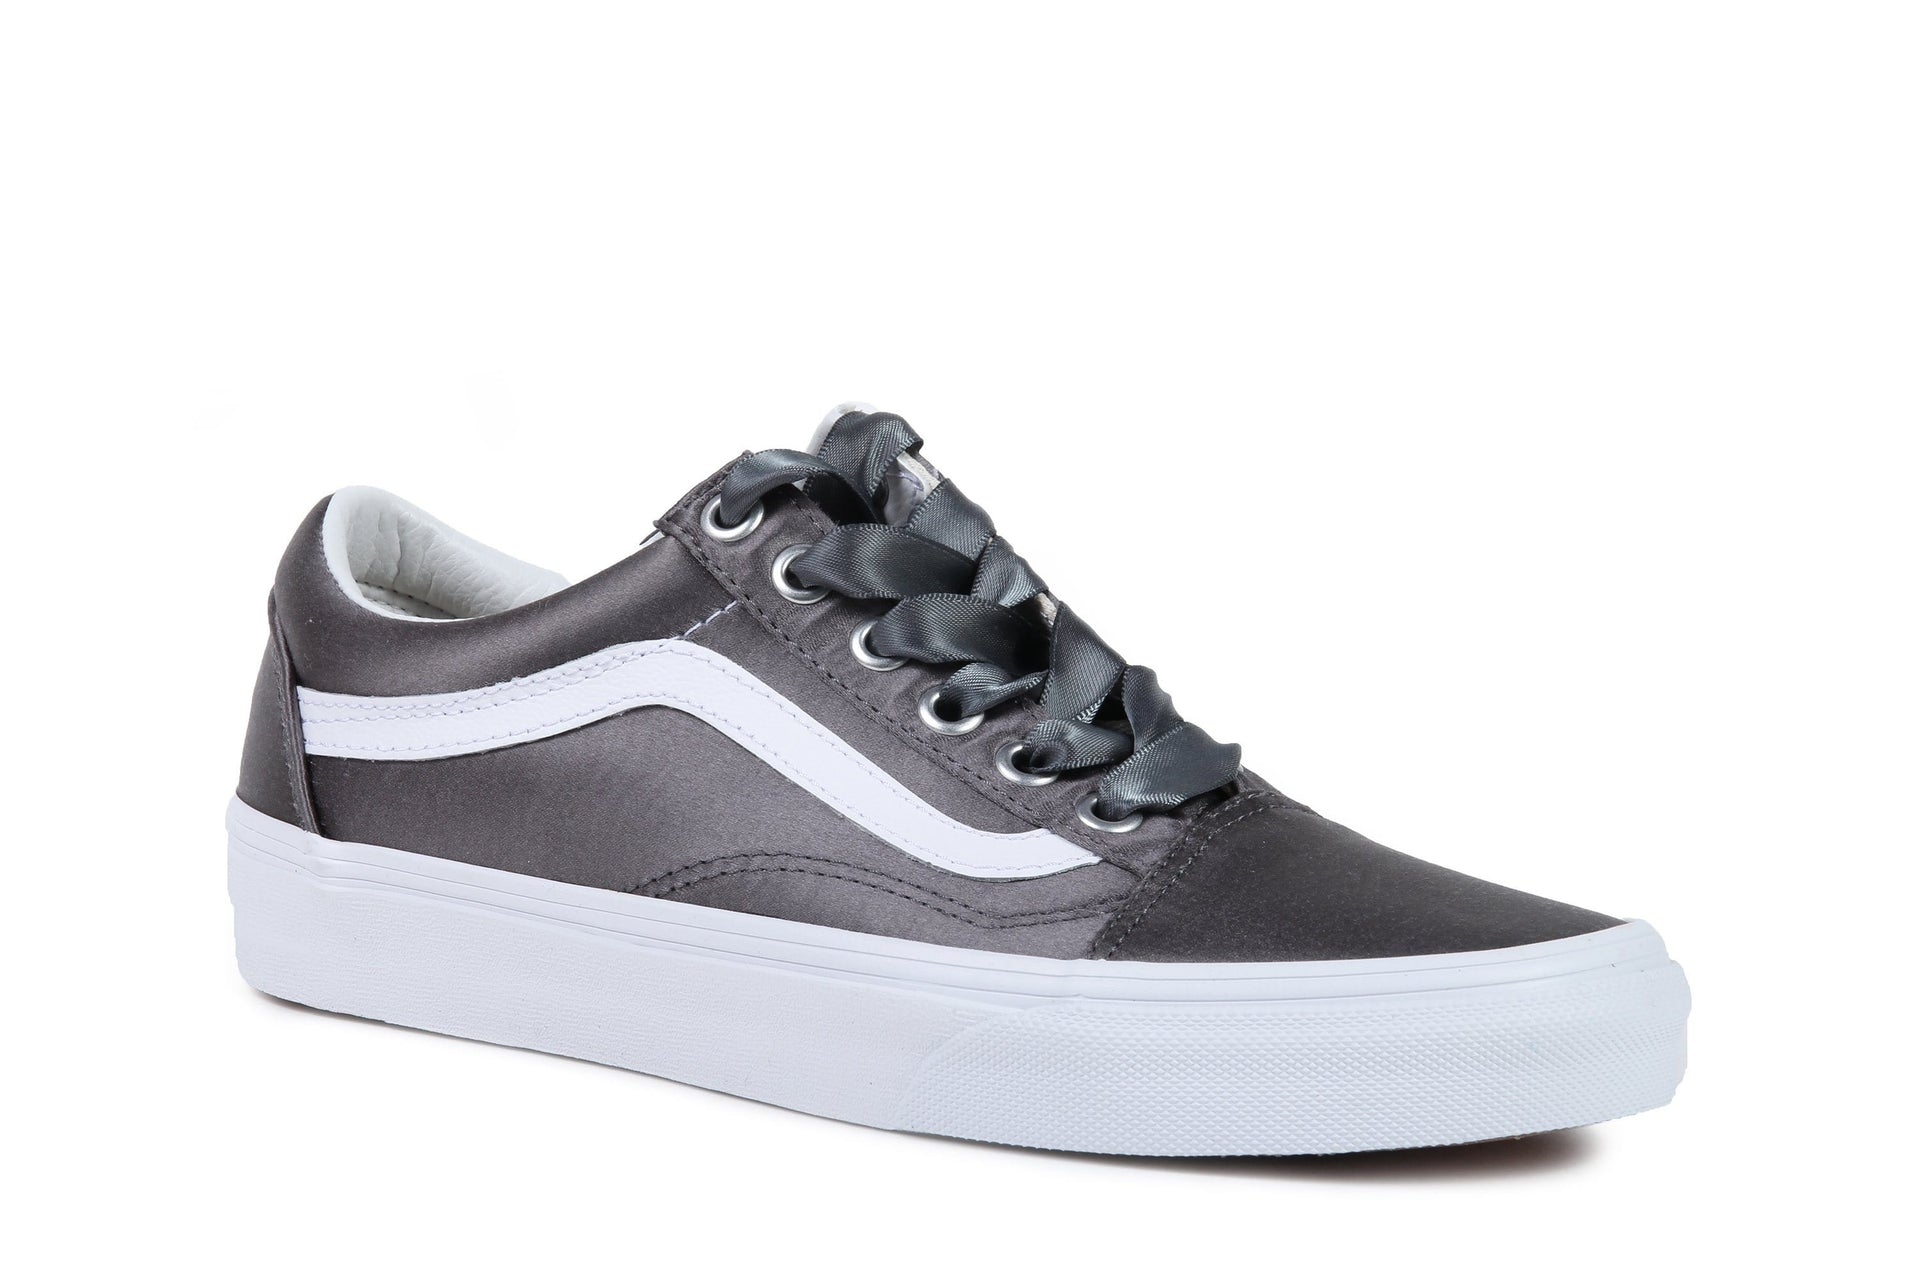 OLD SKOOL (SATIN LUX) - VN0A38G1R1I WOMENS FOOTWEAR VANS